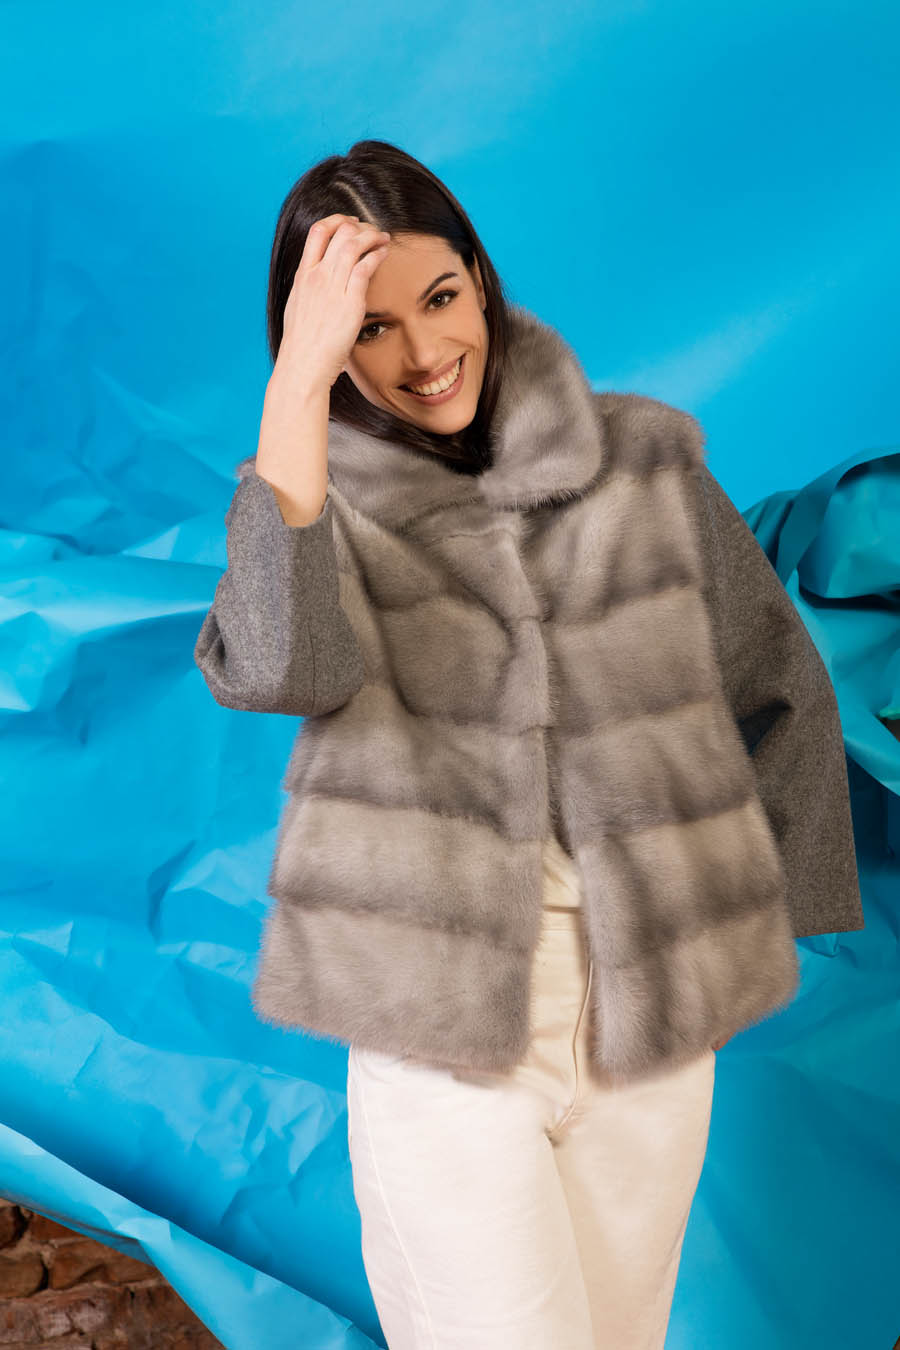 49 P1914V 03 01 giovi pelliccia fur grey - Fall Winter 2019-20